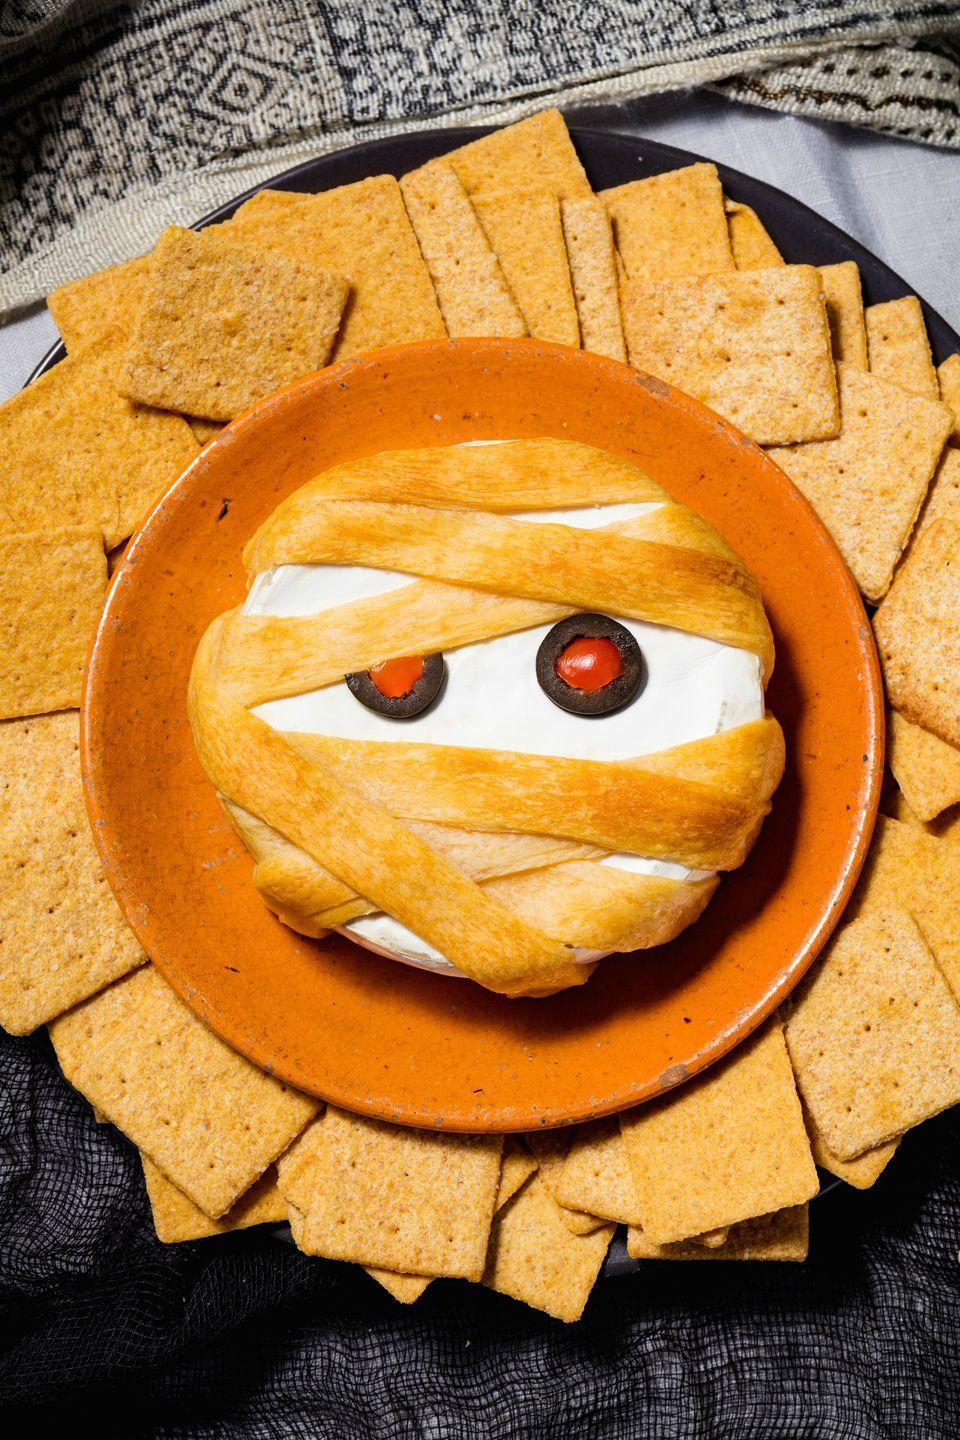 """<p>Thanks to puff pastry, your basic baked brie becomes a totally spooky Halloween appetizer.</p><p>Get the recipe from <a href=""""https://www.delish.com/holiday-recipes/halloween/recipes/a49347/mummy-brie-recipe/"""" rel=""""nofollow noopener"""" target=""""_blank"""" data-ylk=""""slk:Delish"""" class=""""link rapid-noclick-resp"""">Delish</a>.</p>"""